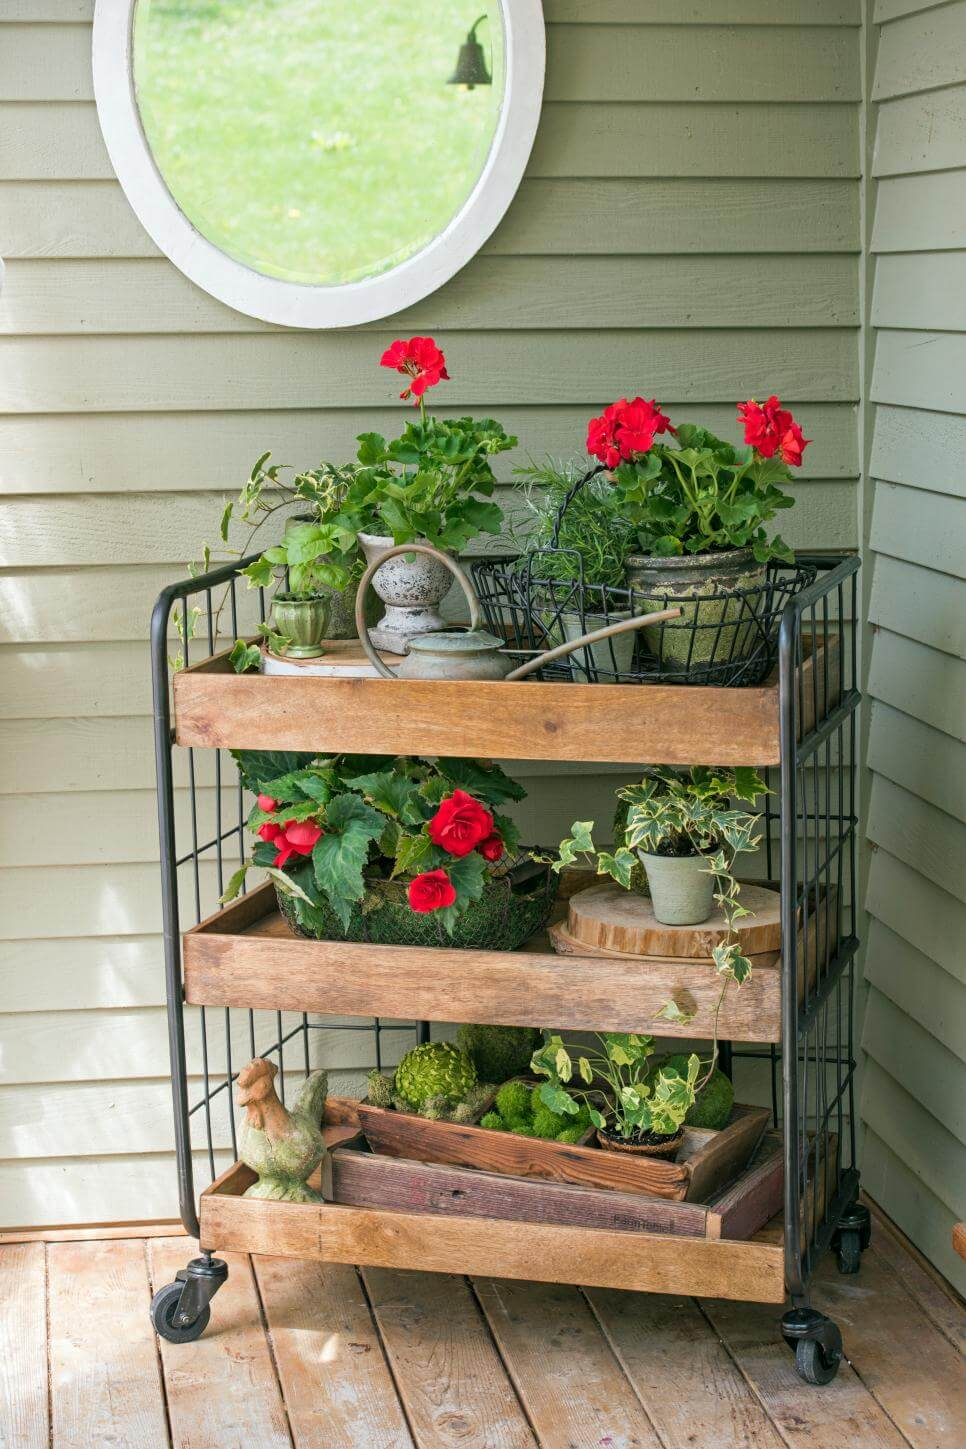 Grocer's Trolley Gardening Display